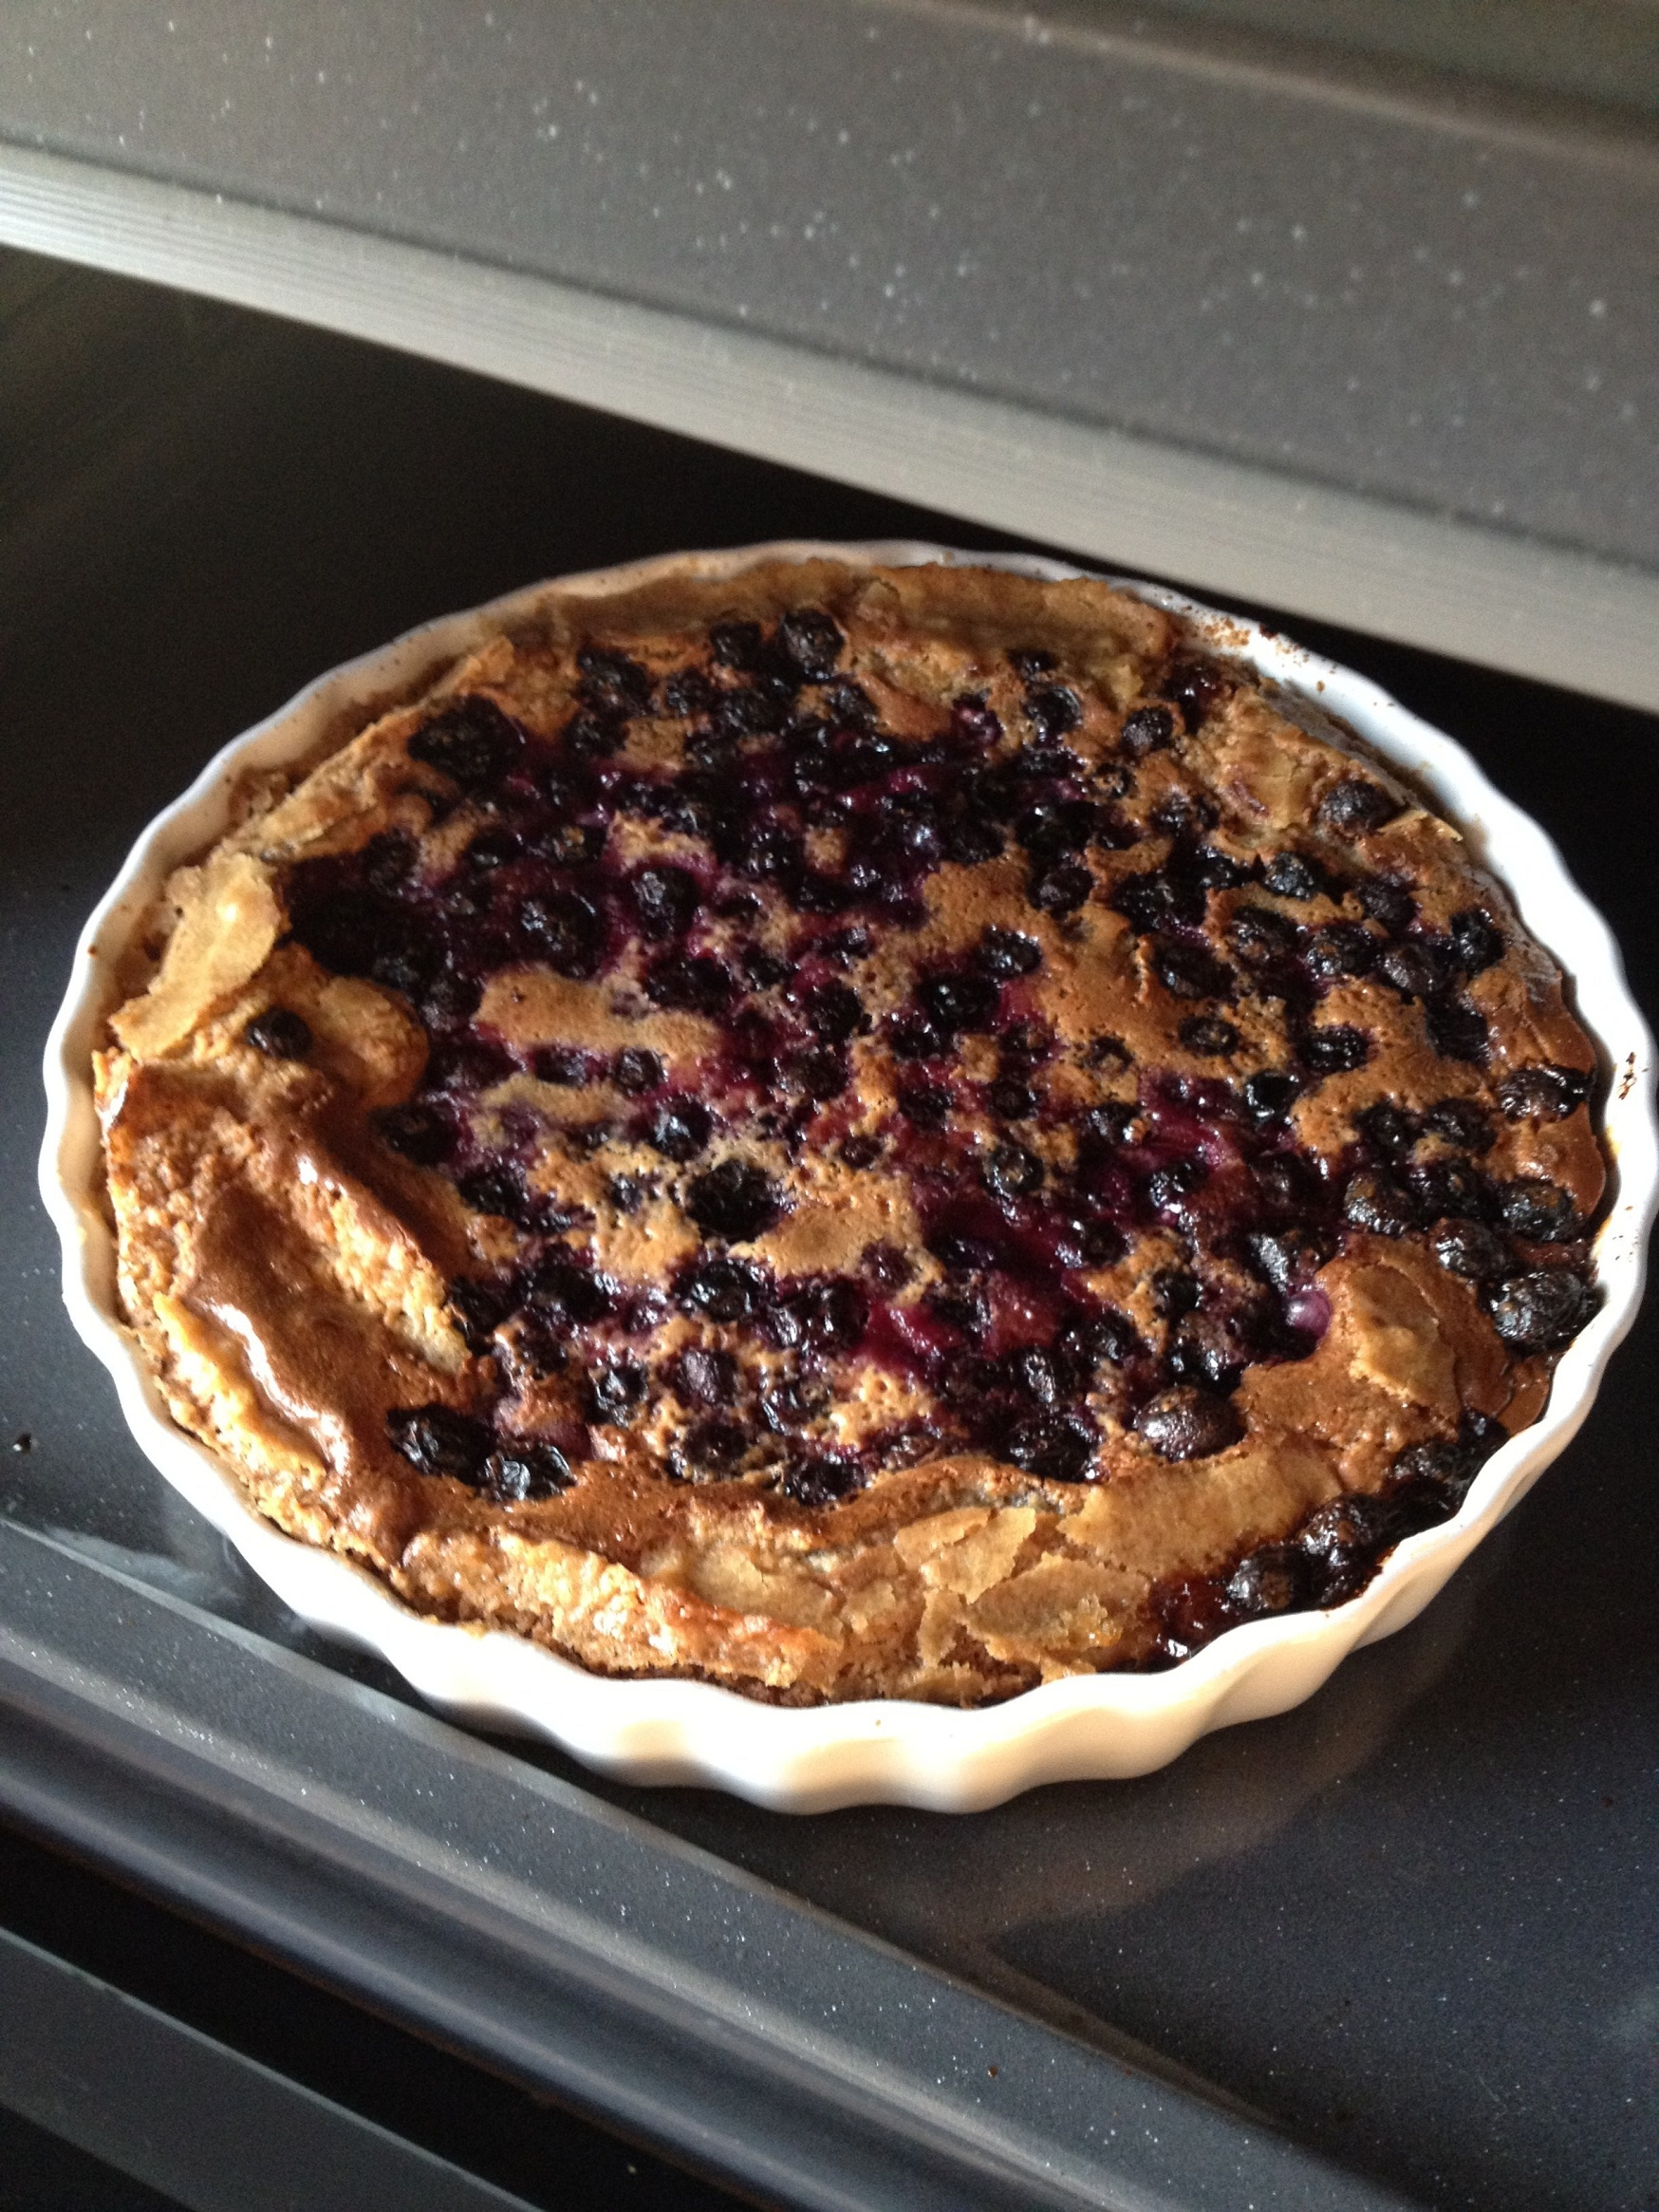 Finnish Blueberry Pie